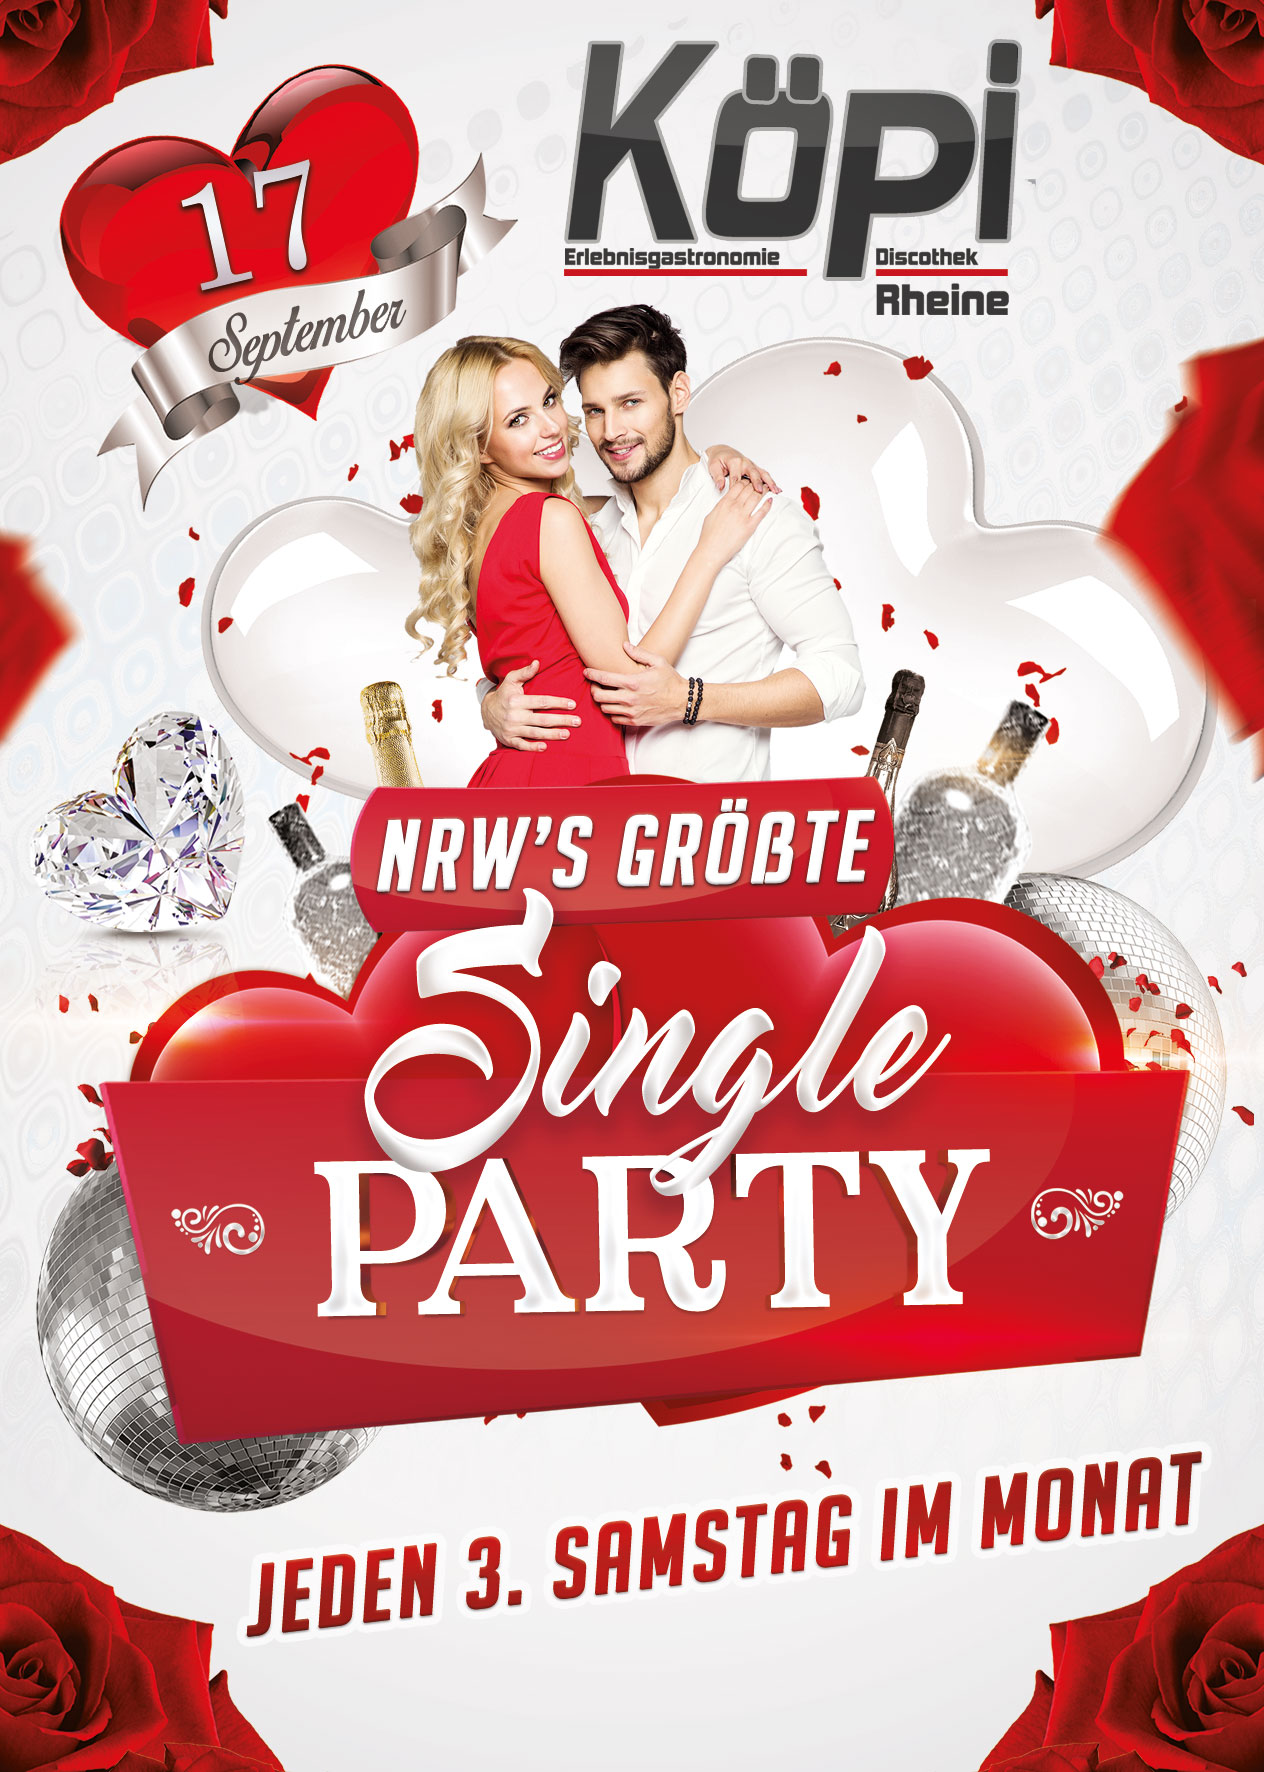 20.08.16 Single Party - Köpi am Ring Rheine